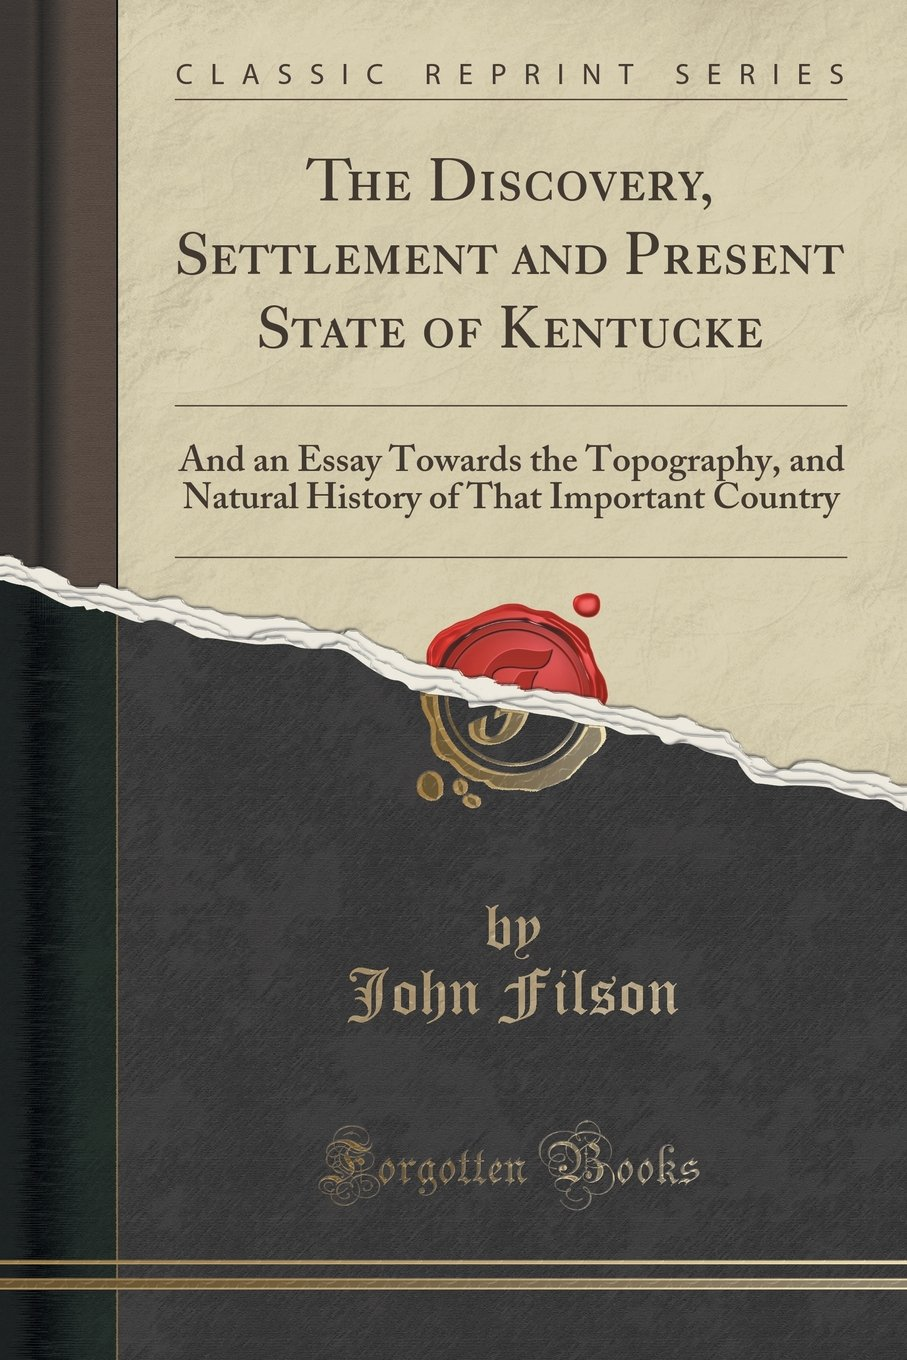 Download The Discovery, Settlement and Present State of Kentucke: And an Essay Towards the Topography, and Natural History of That Important Country (Classic Reprint) pdf epub